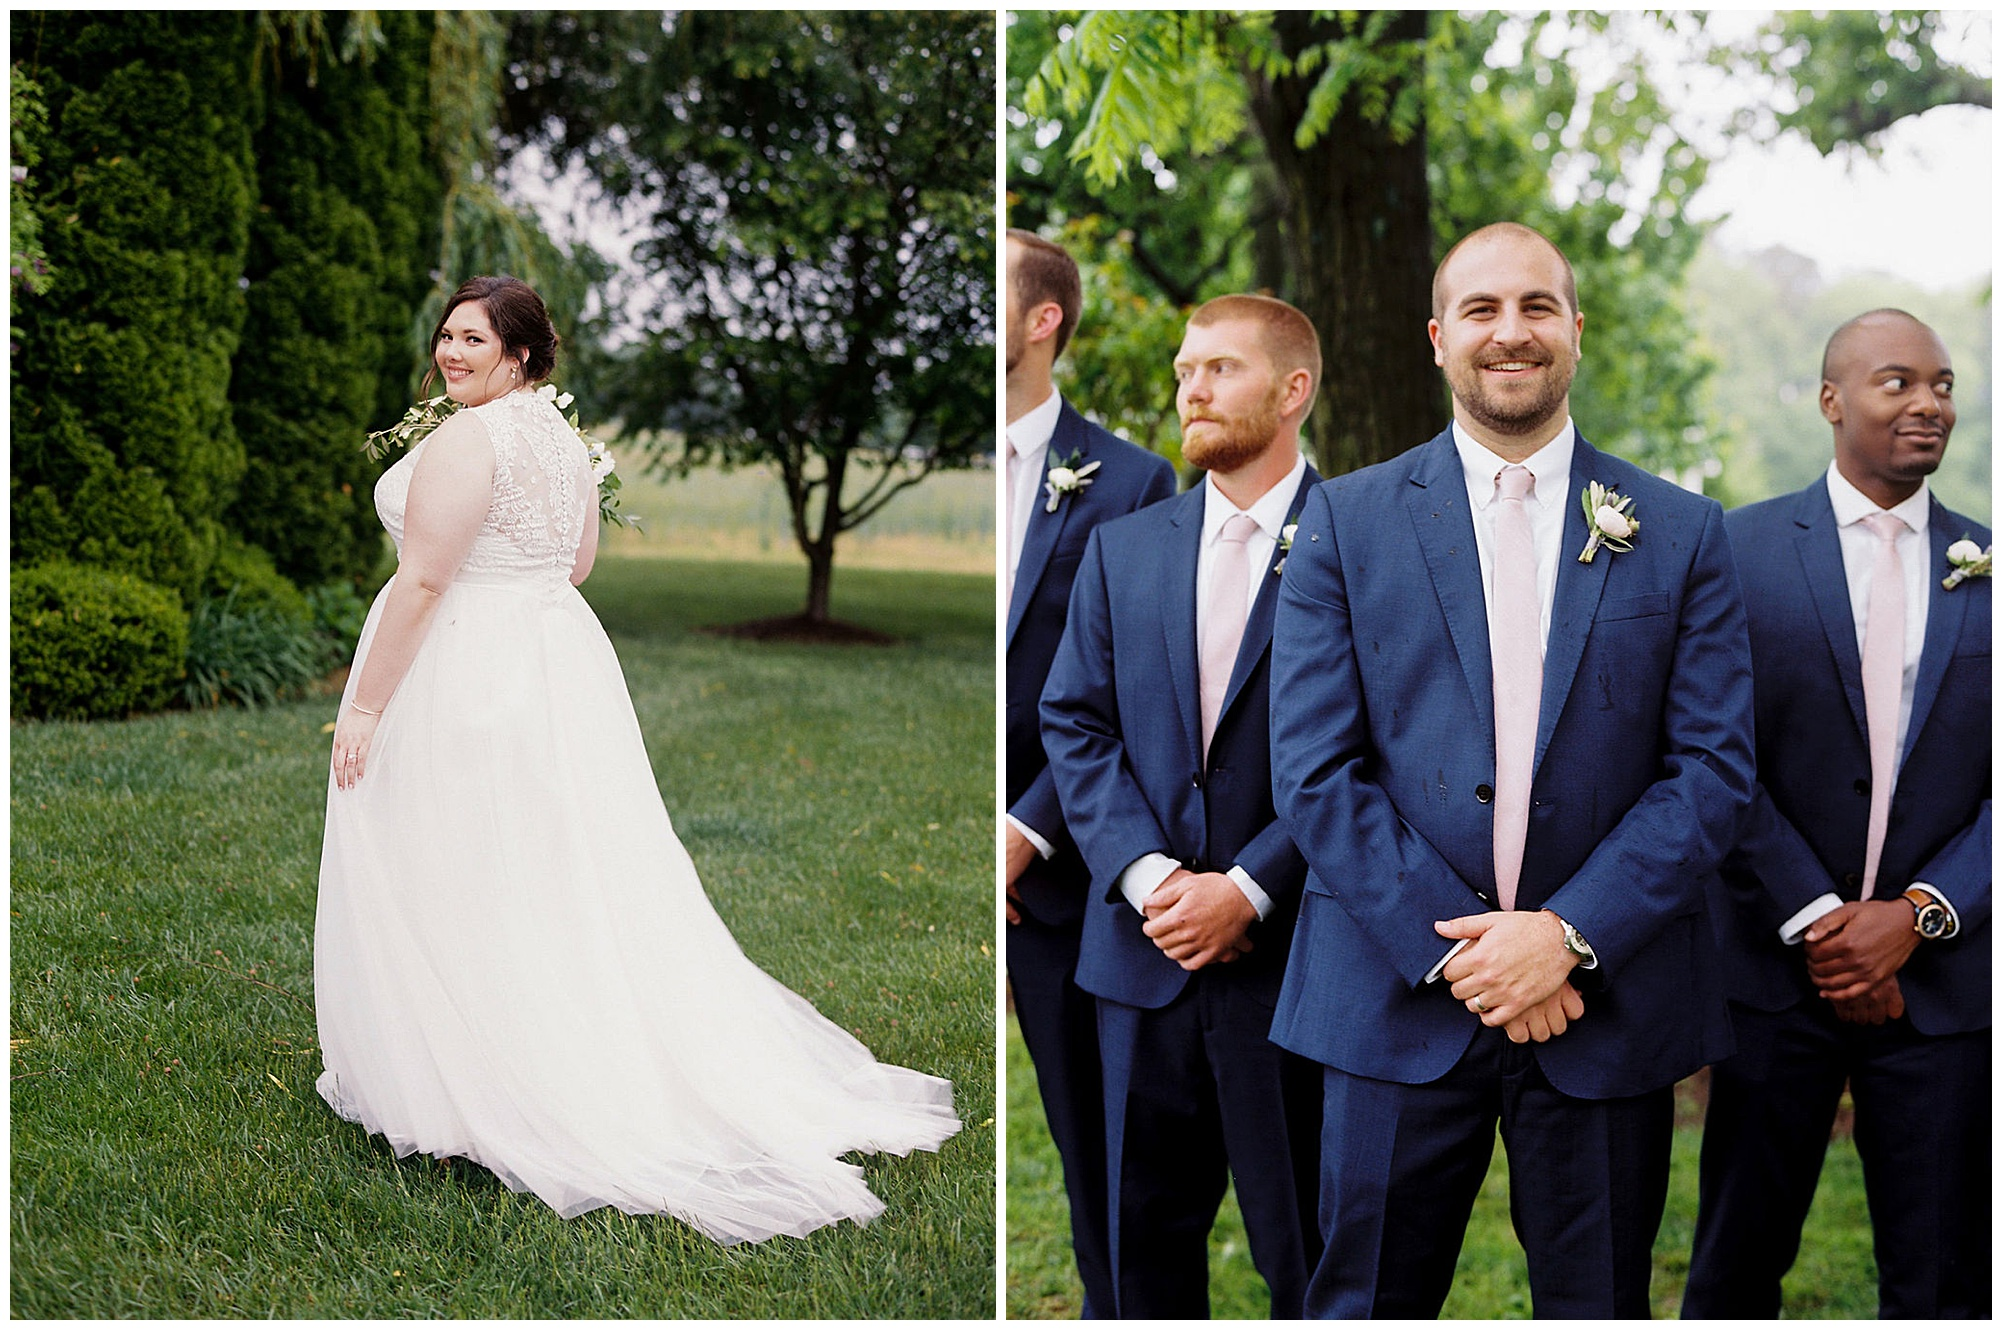 bride and groom portraits outdoors at eastern shore wedding venue, inn at huntingfield in rock hall md